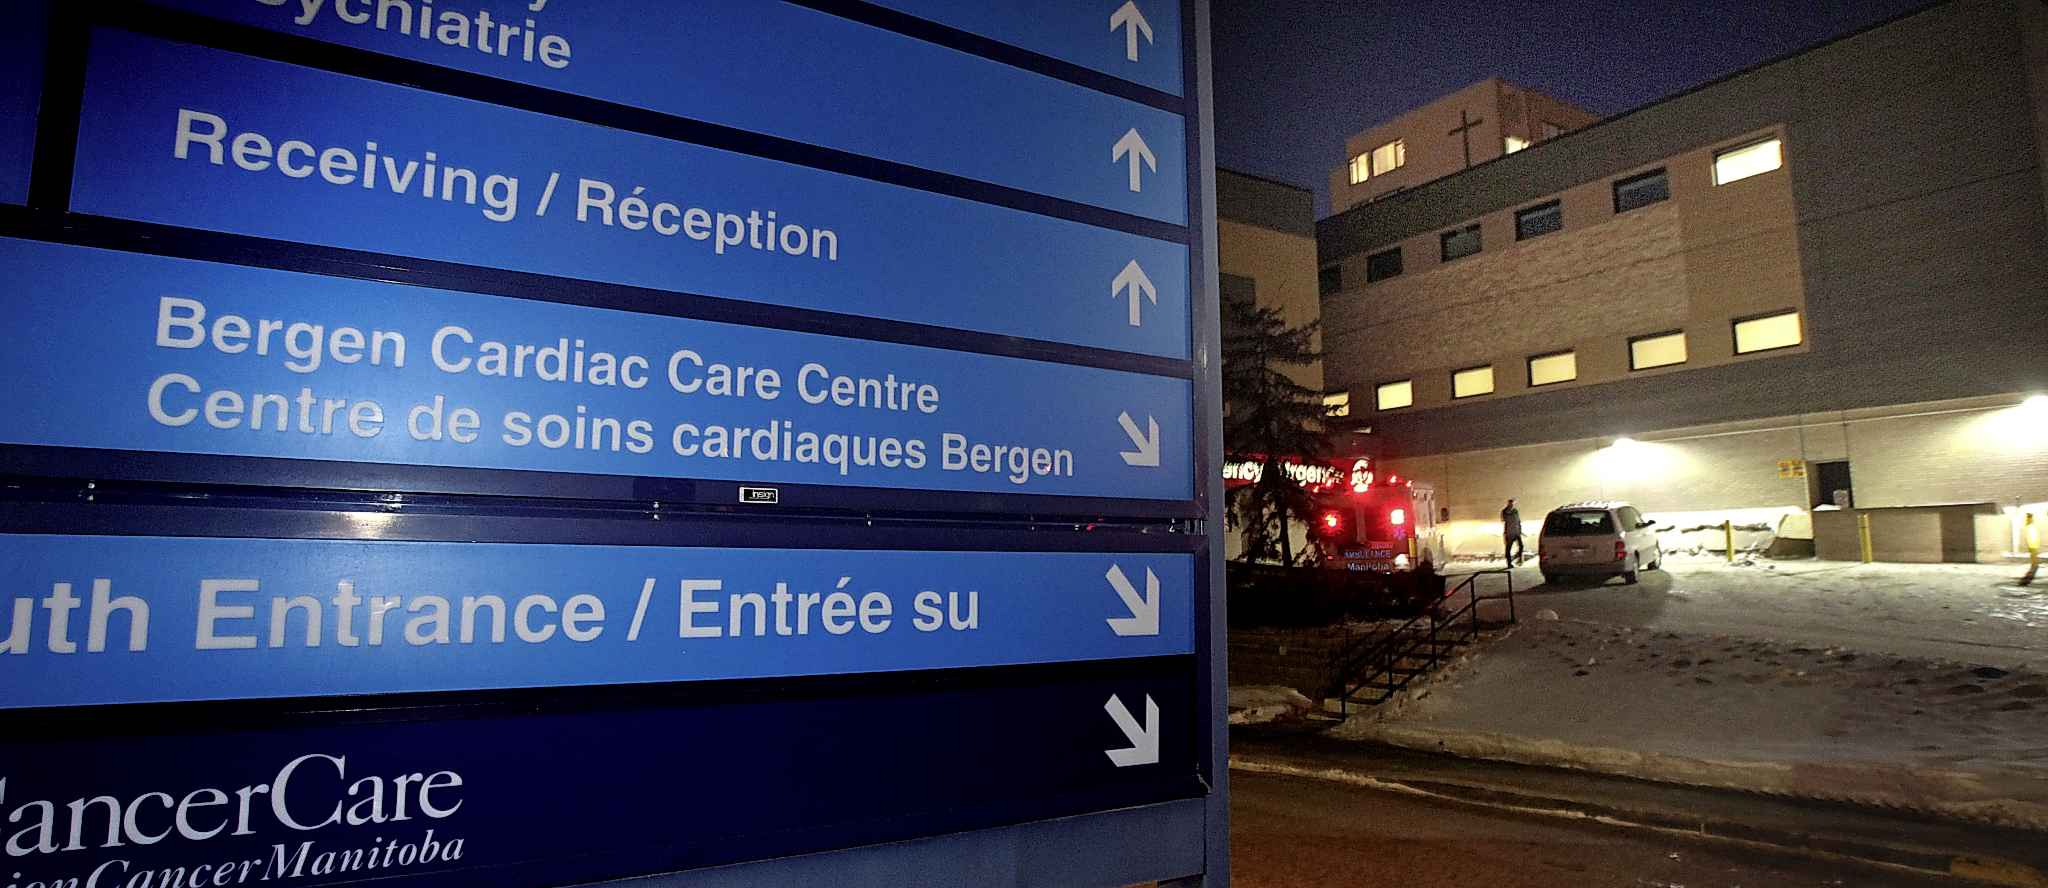 Signs point to the Bergen Cardiac Care center at the St. Boniface Hospital. (Phil Hossack / Winnipeg Free Press files)